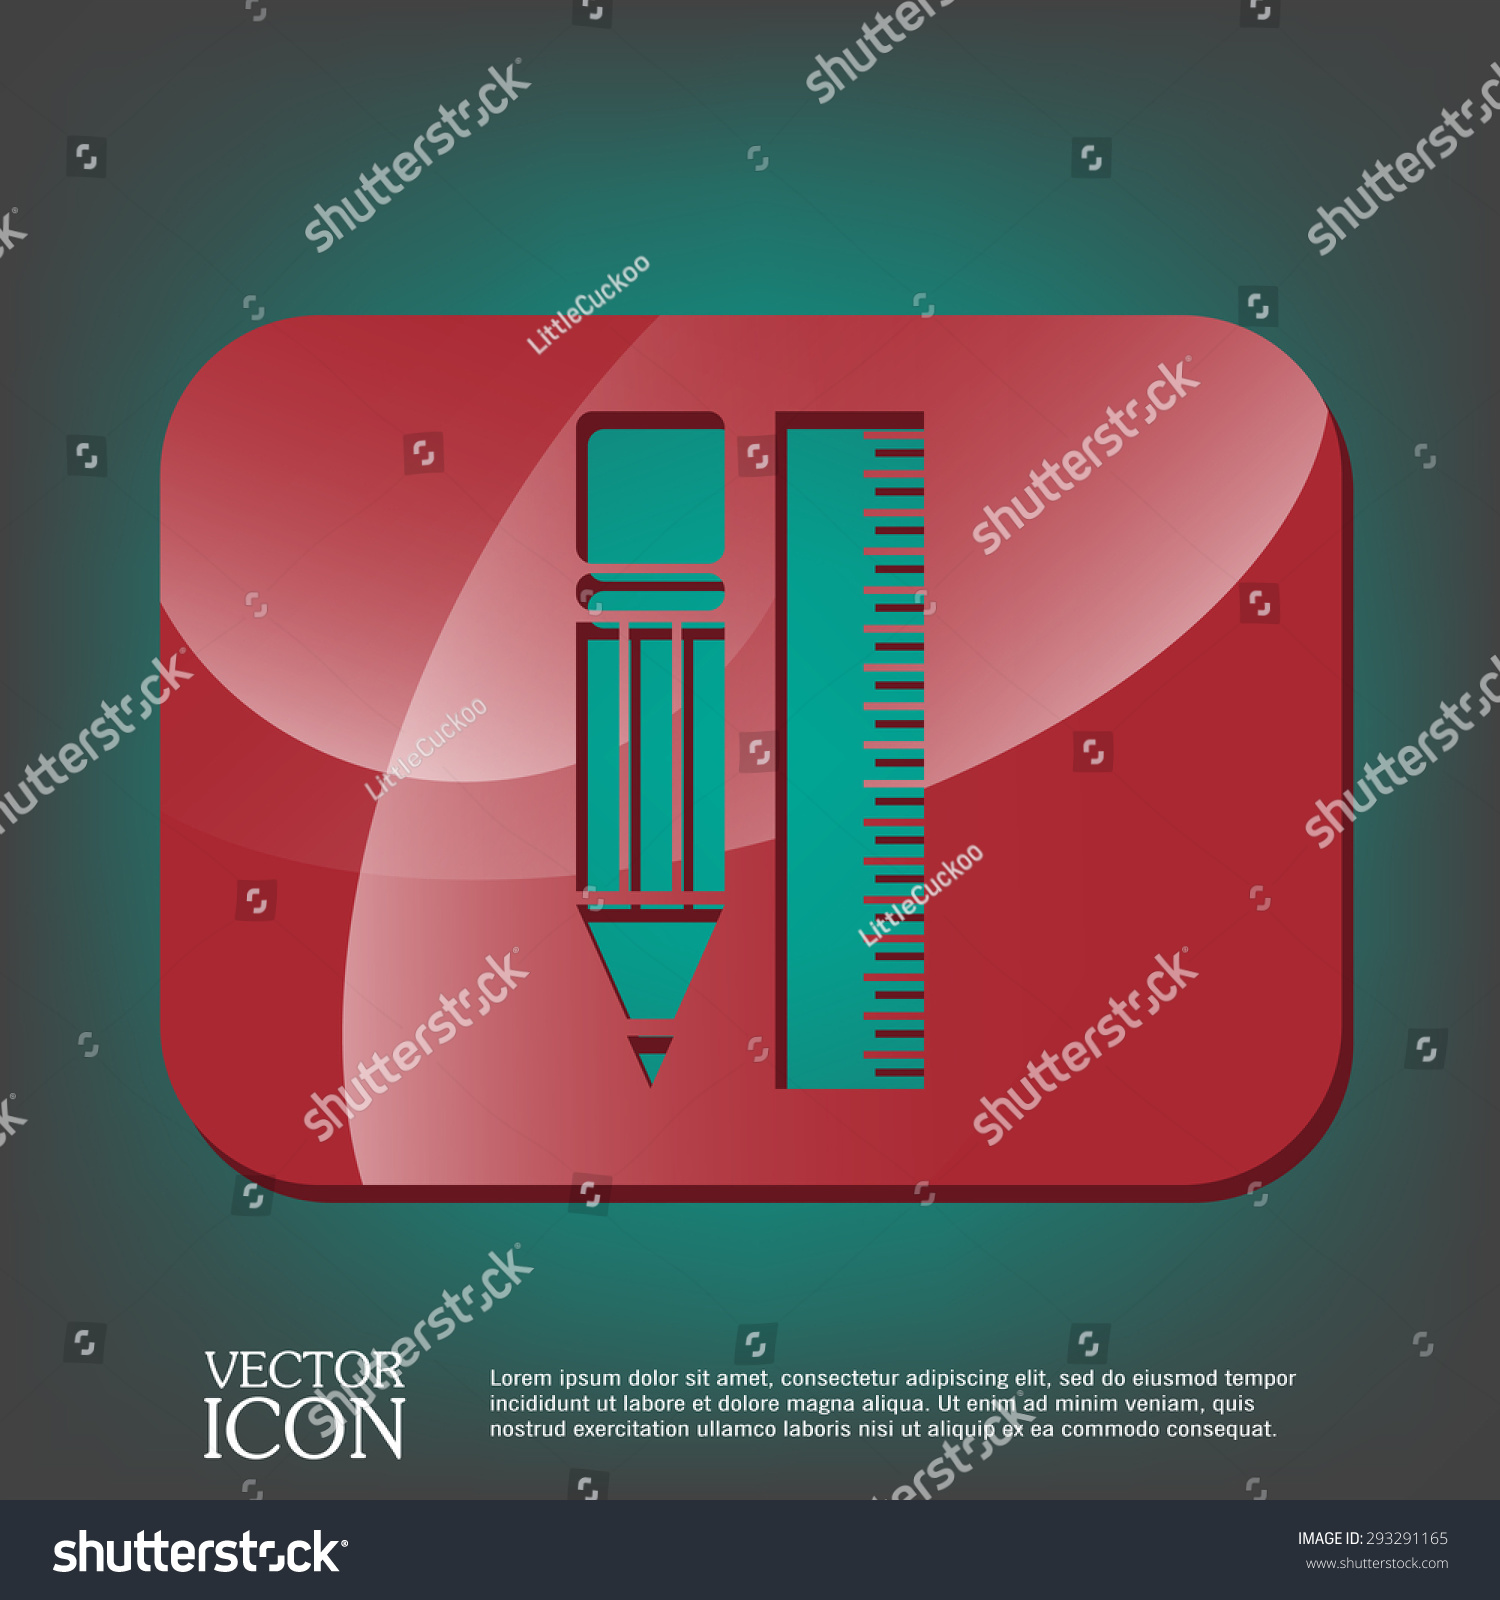 ruler and pencil characters geometry Education sign symbol icon drawing and geometry